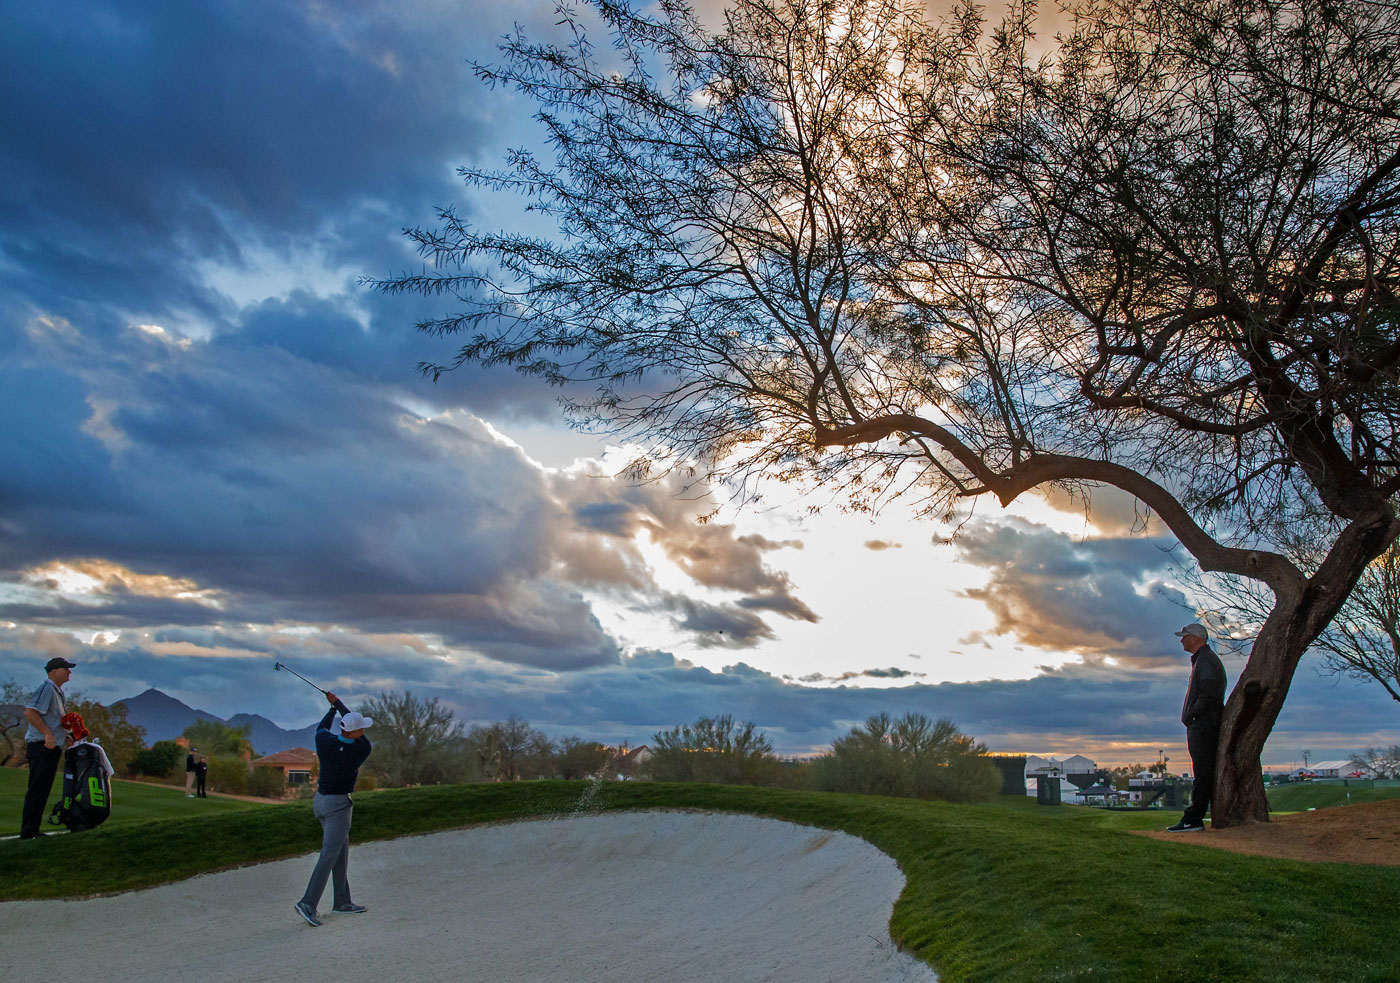 Tiger Woods blasts from a bunker during his practice round at TPC Scottsdale.